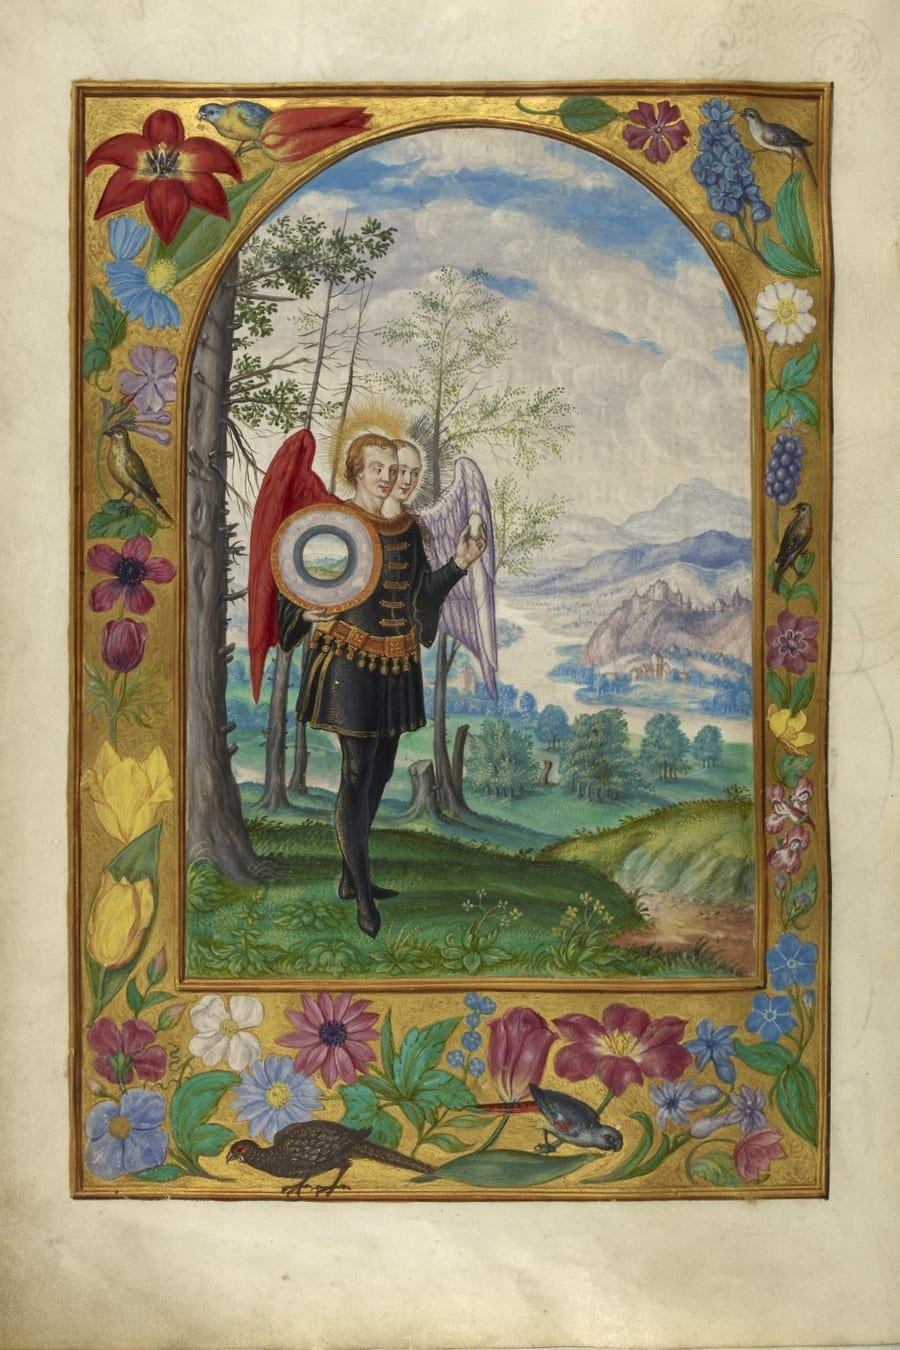 Illustration of two-headed winged figure from the Alchemical manuscript Splendor Solis